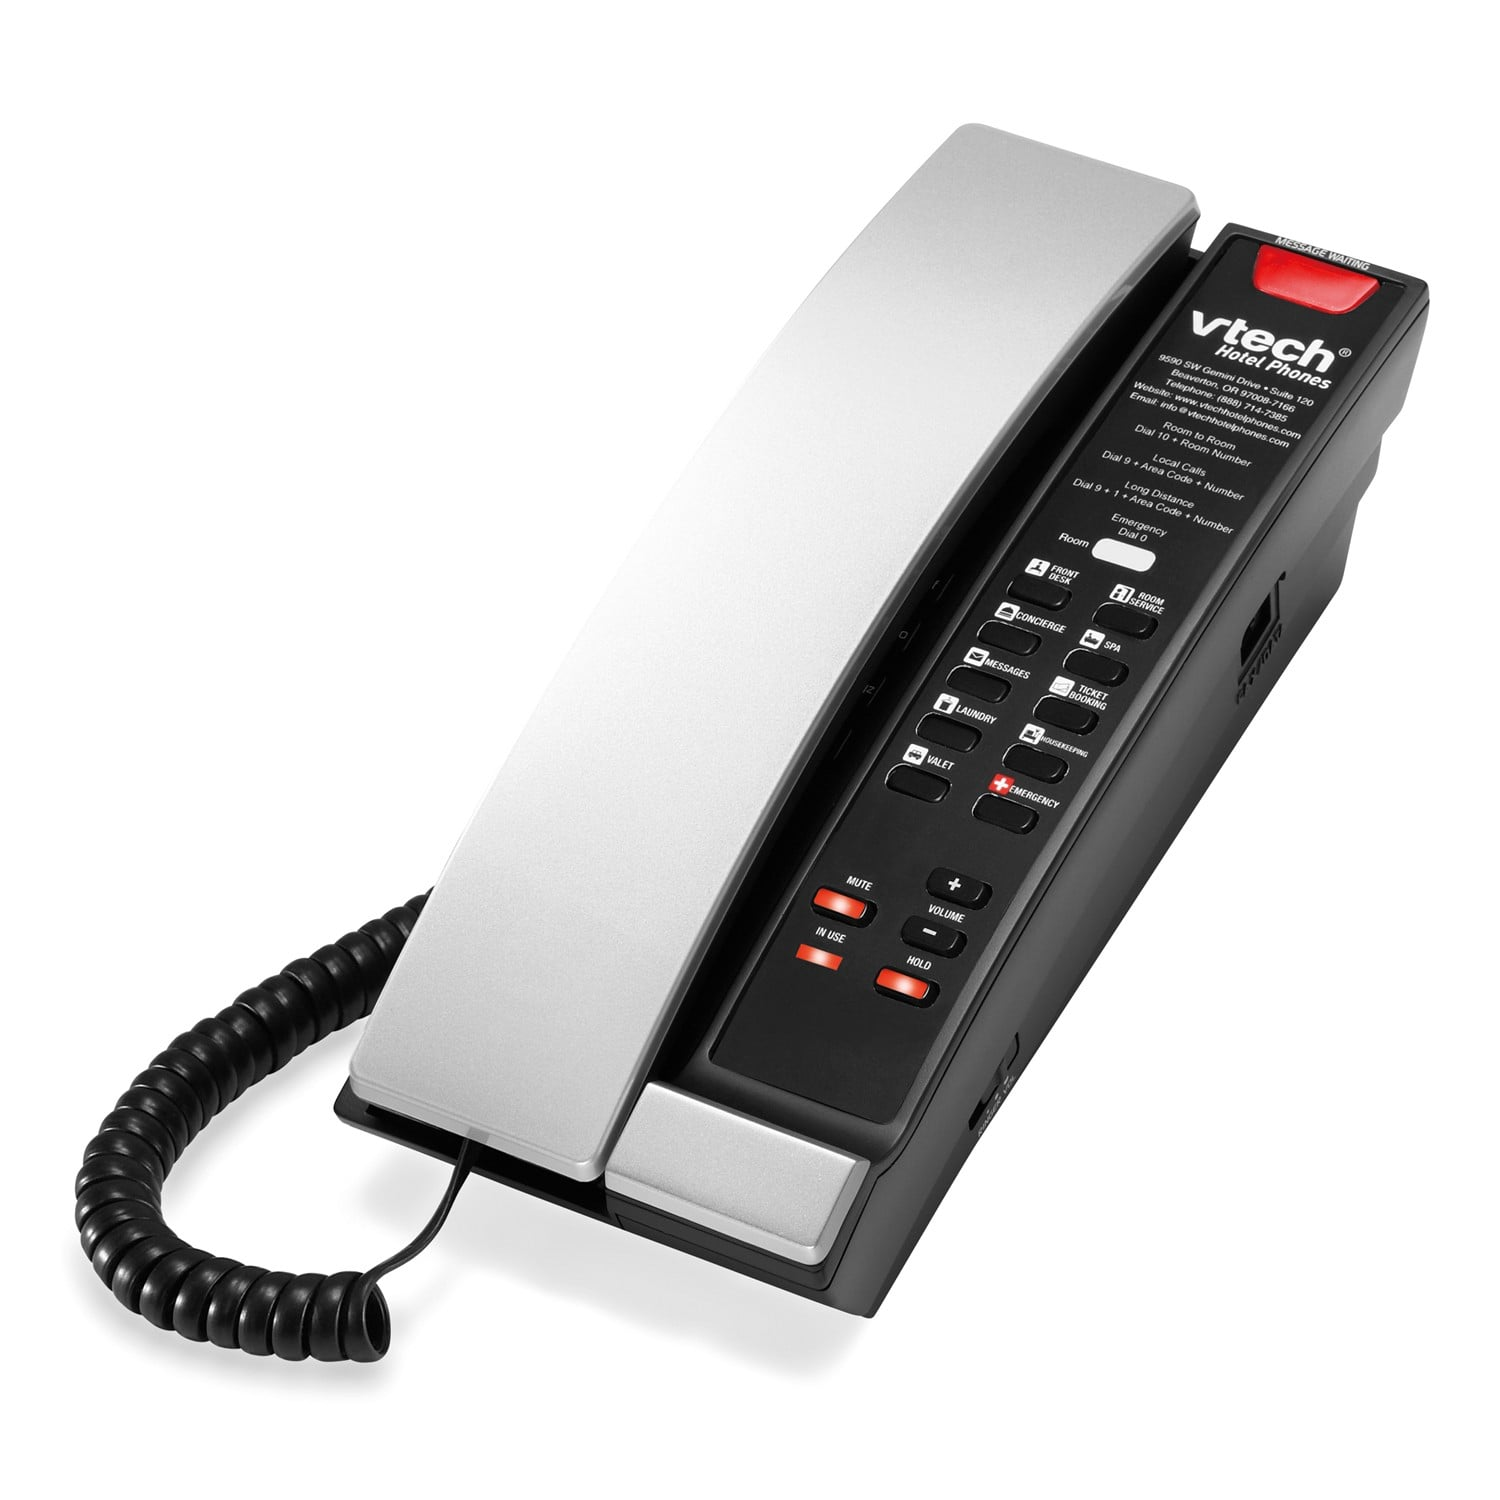 Image of 1-Line Contemporary Analog Petite Phone | A2211 Silver & Black